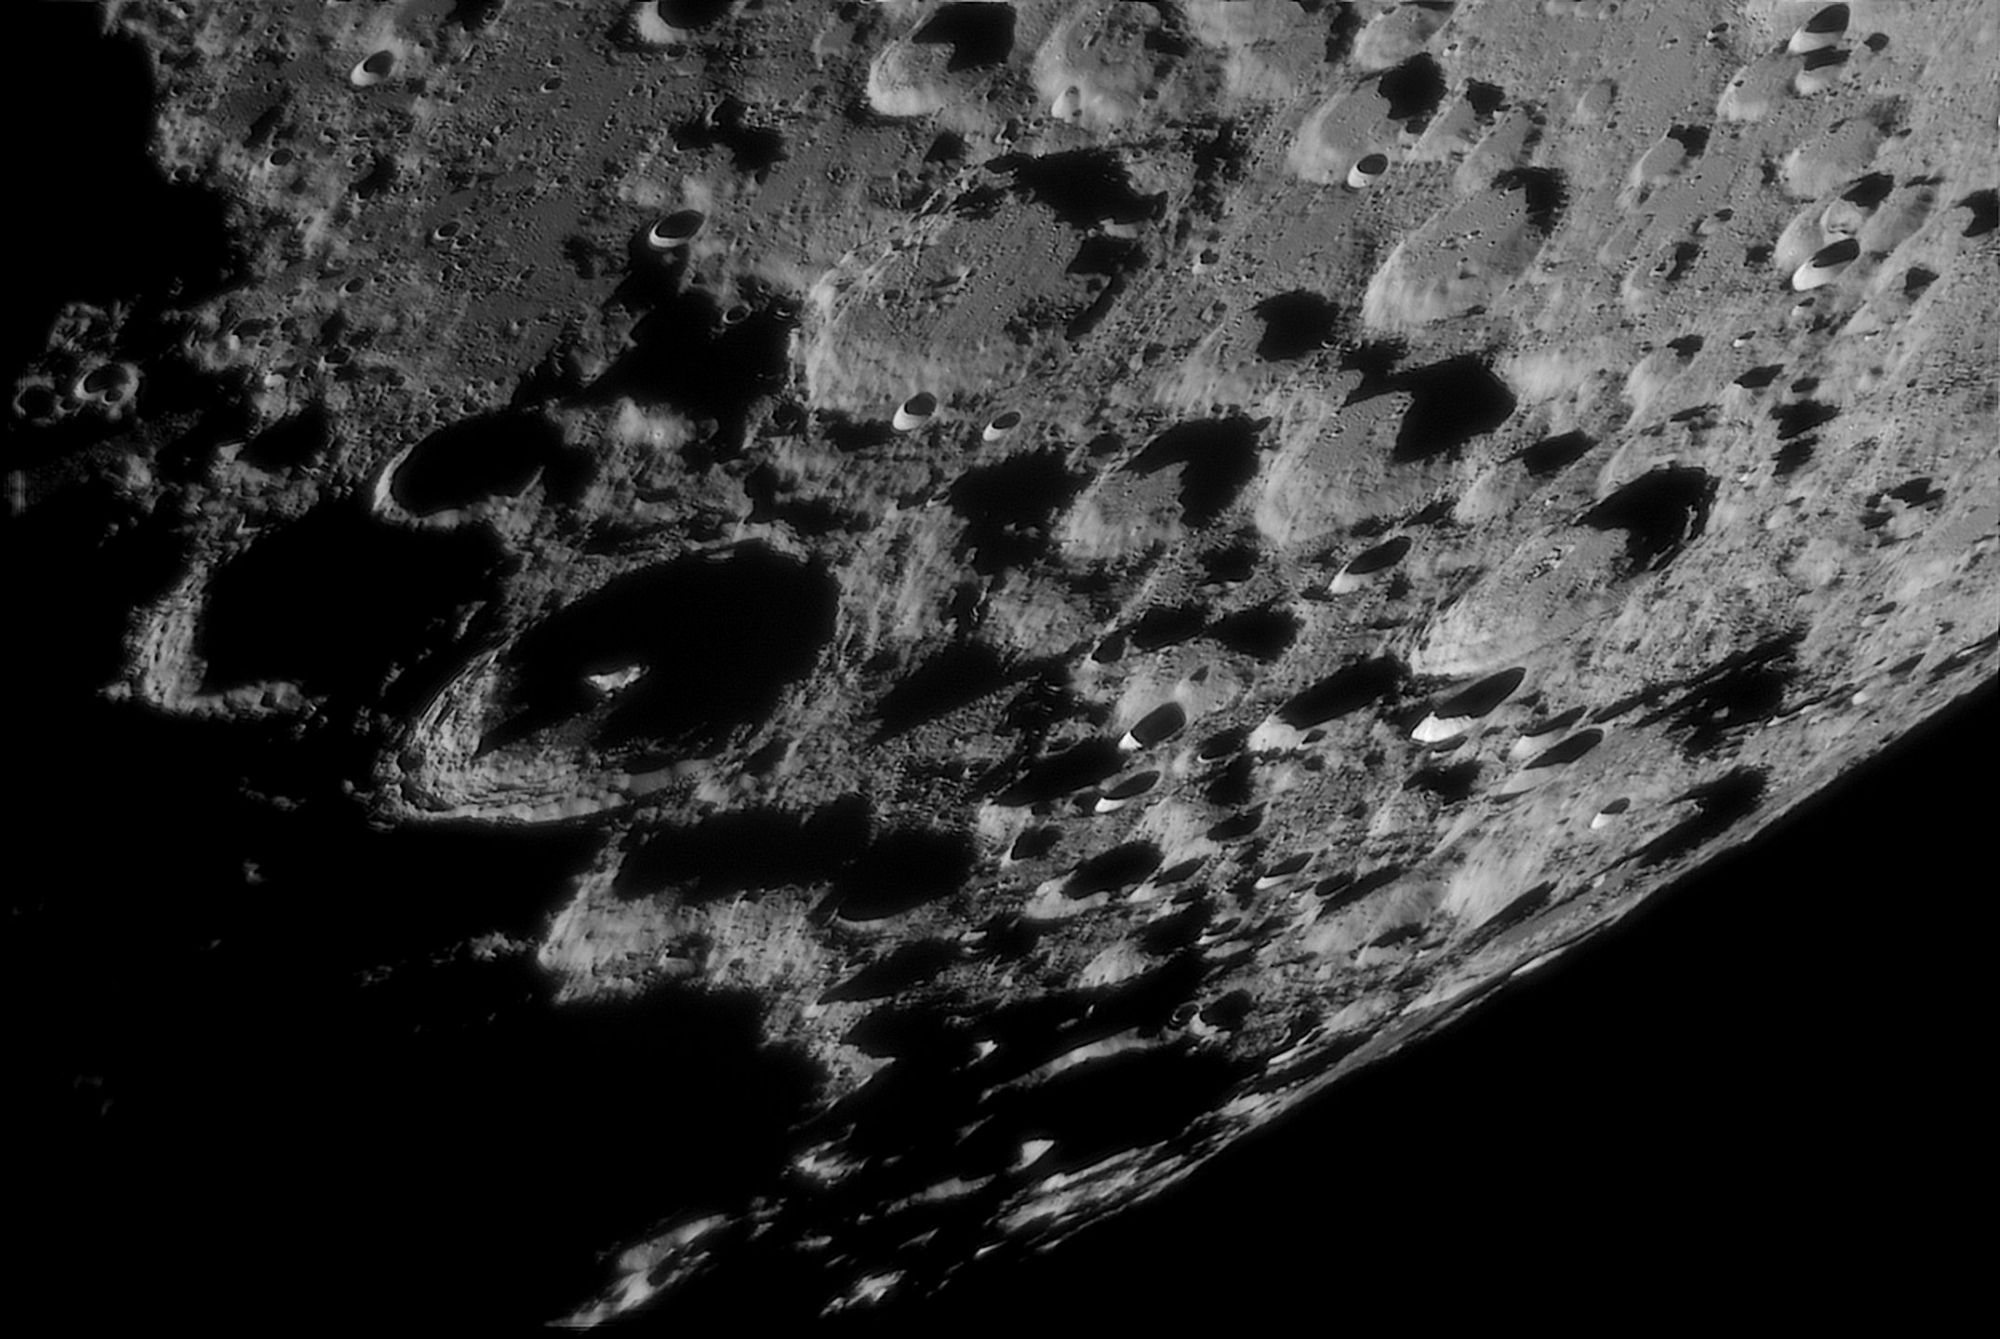 Moon_200530_204258_W23A_join_pipp_AS_F600_lapl4_ap274.thumb.jpg.e0a98e5719c421c8be79488e244f4812.jpg